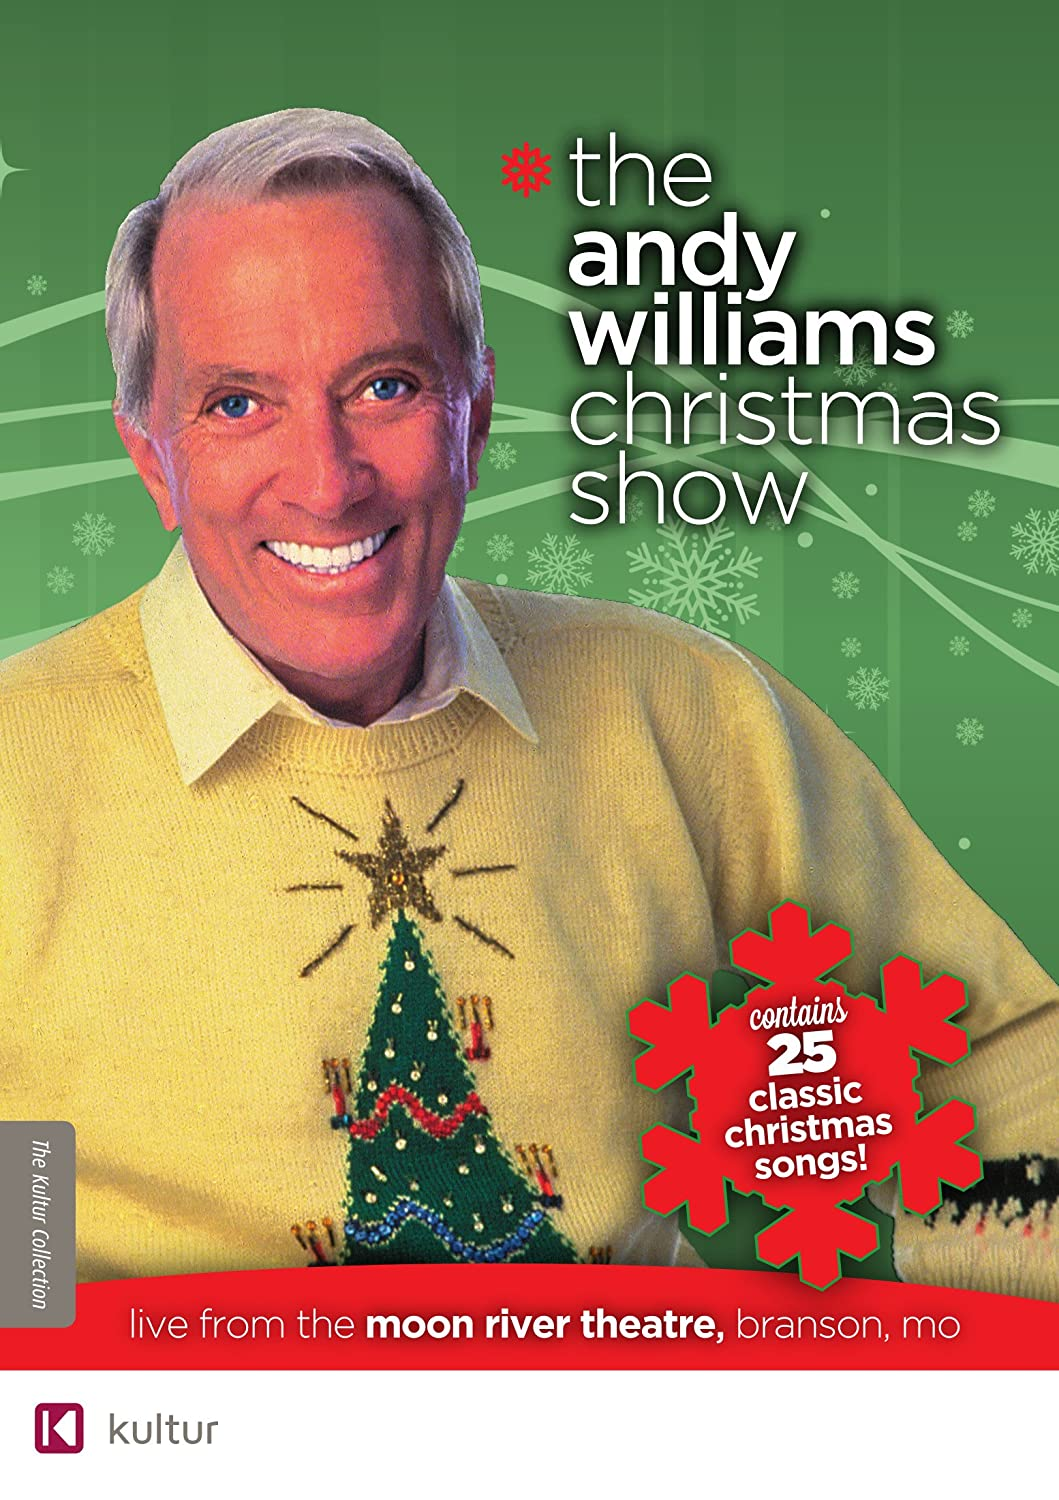 Amazon.com: The Andy Williams Christmas Show (Live from Branson ...